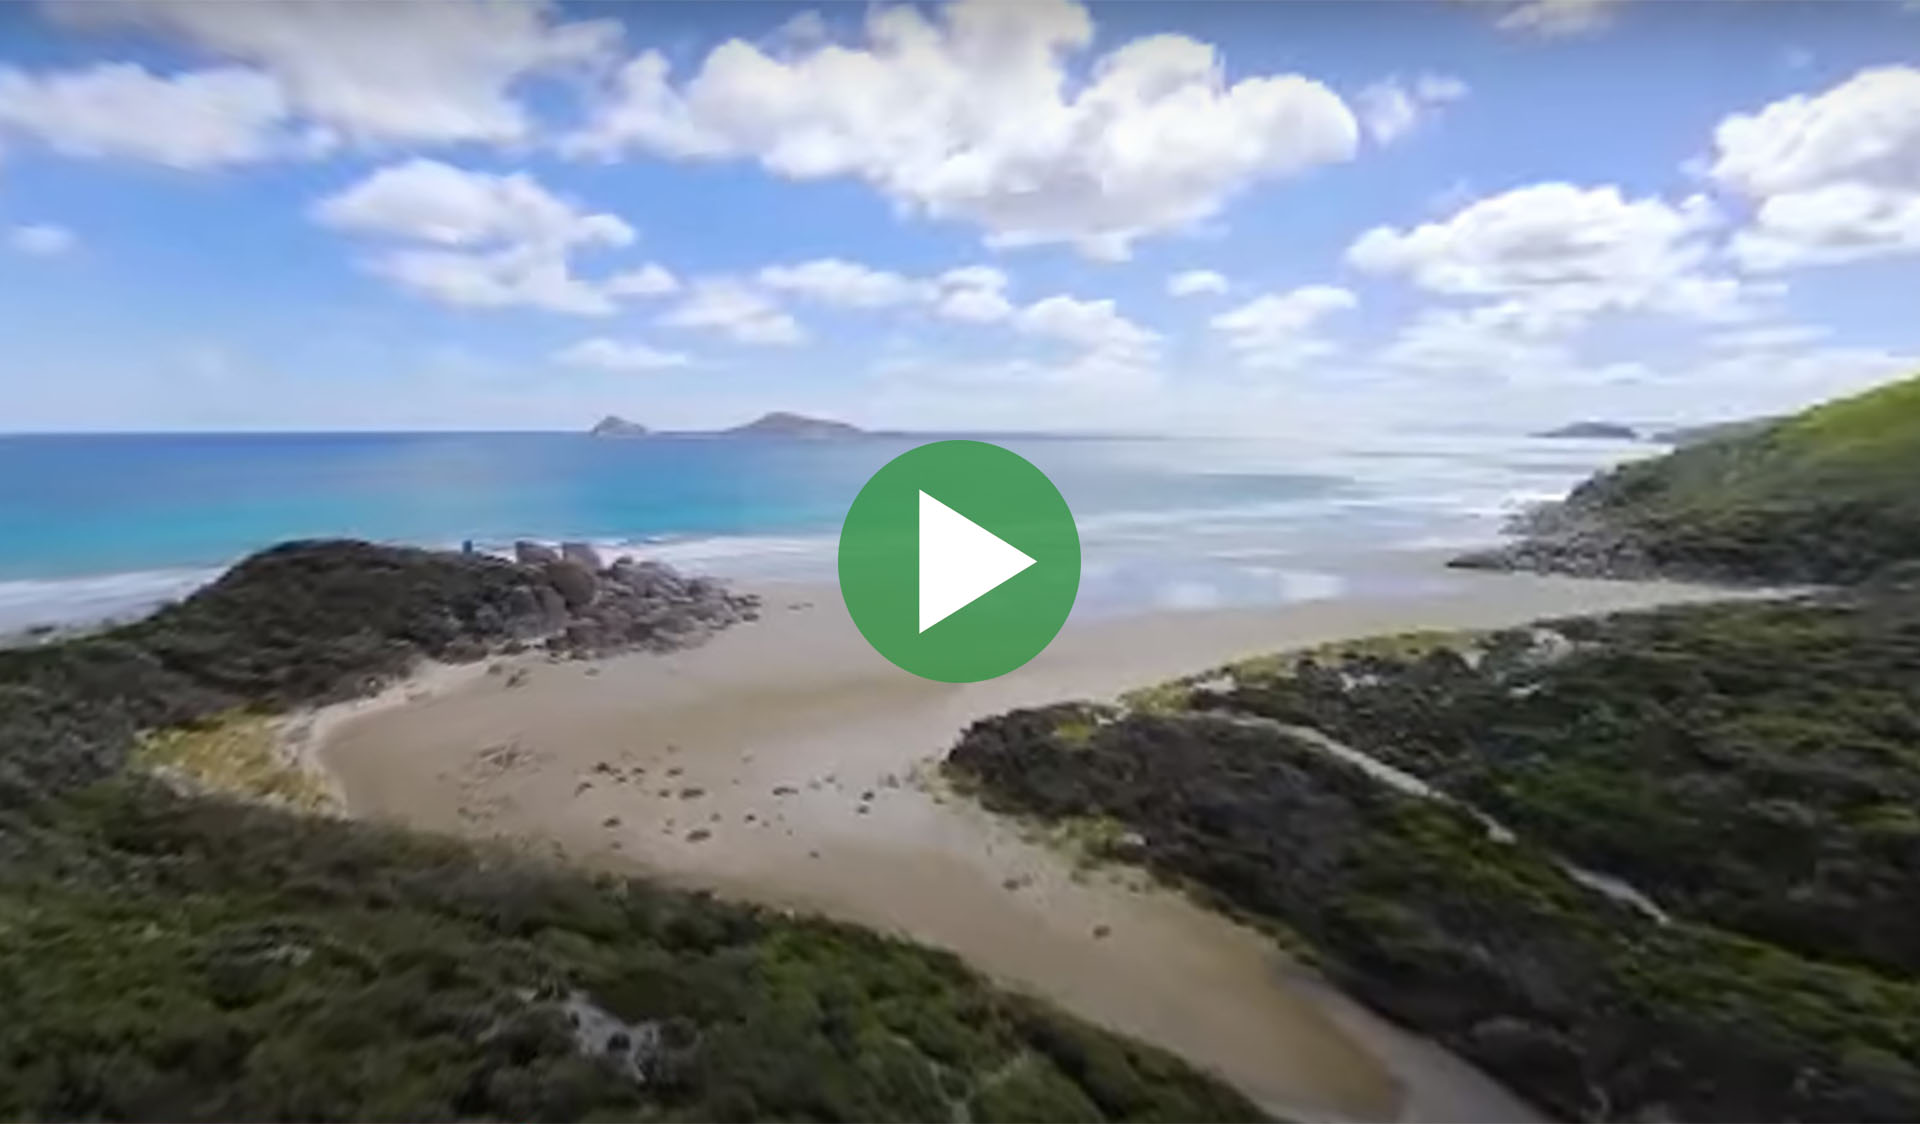 Still image from 360-degree time-lapse video of Wilsons Promontory National Park, with play icon overlay.